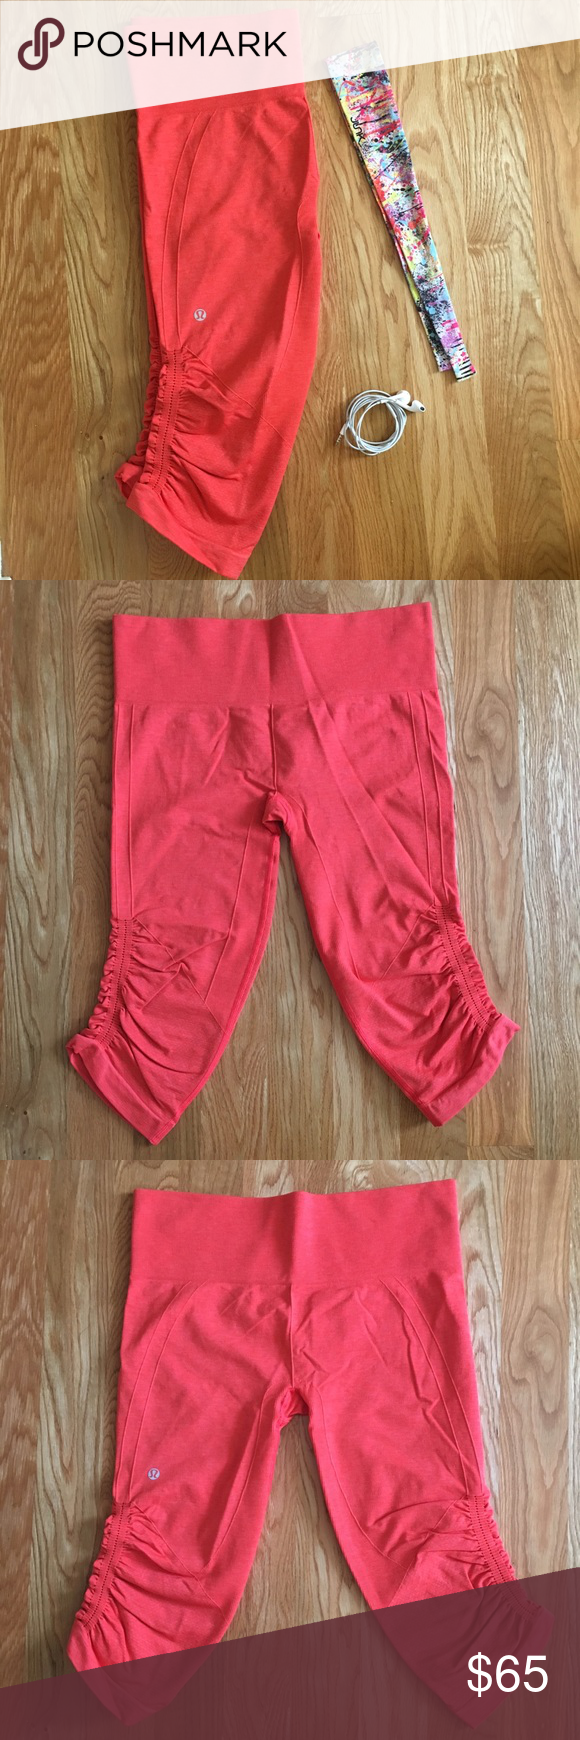 Ebb and flow lululemon cropped yoga pants Super comfortable and cute. Perfect for running. They are in great condition because they have only been worn a few times (my mom wore her align yoga pants more). lululemon athletica Pants Leggings